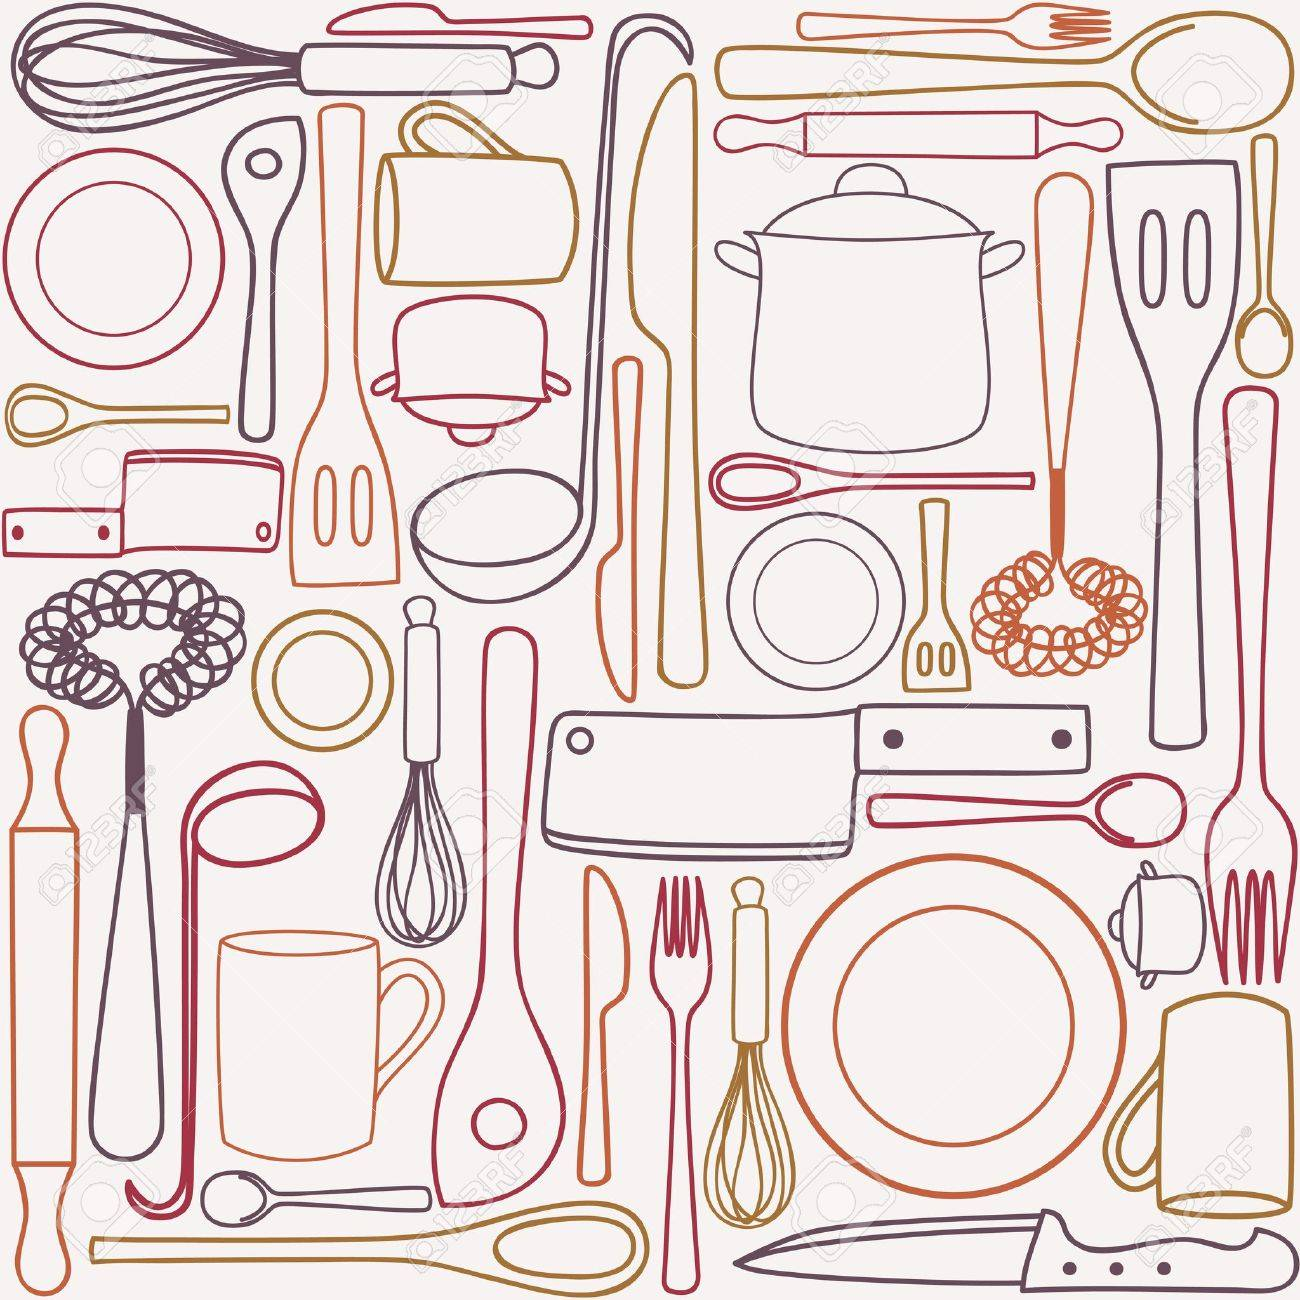 Kitchen Utensils Wallpaper kitchen and cooking utensils and cutlery - seamless pattern